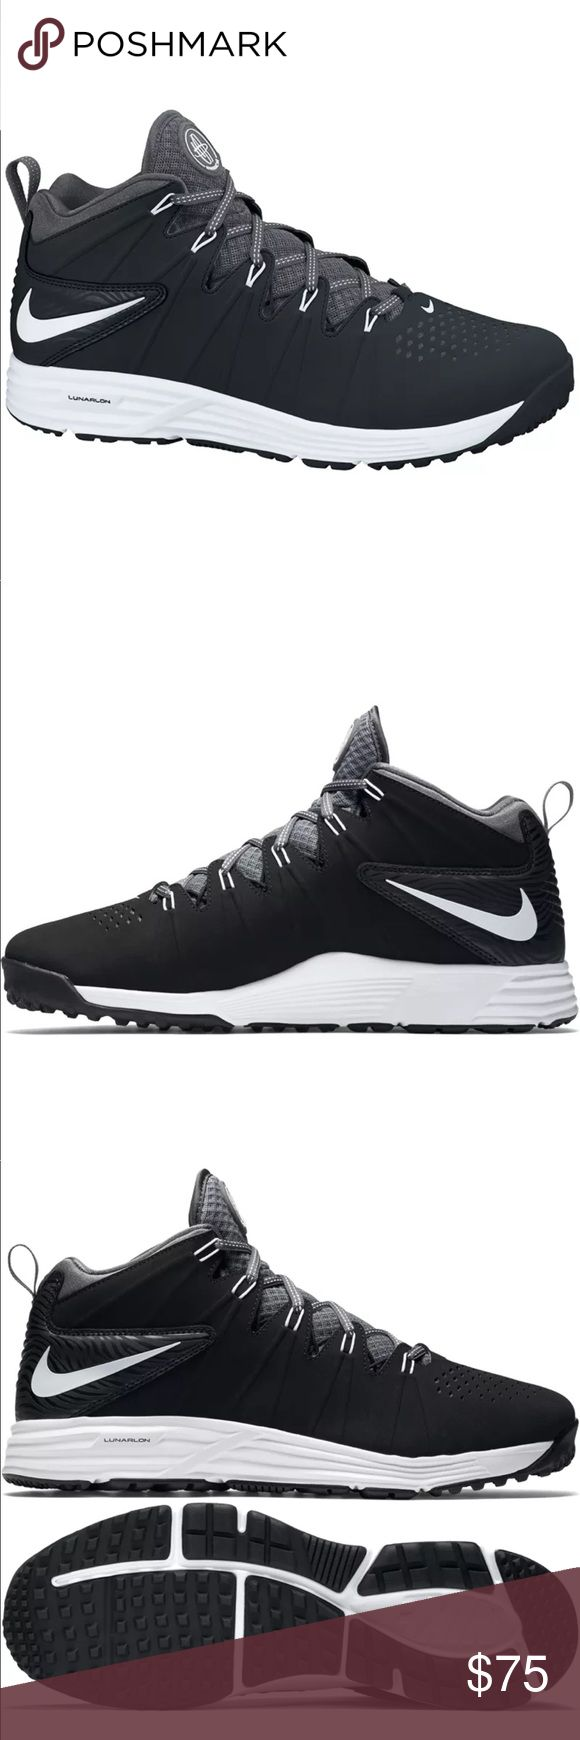 Men's Nike Huarache 4 LAX Turf Shoes 11.5 New Without the Box! The Nike Huarache 4 LAX Lacrosse Turf Shoes were strategically designed for the shifty lacrosse player that relies on change of direction dodging. With its mid-cut design weighing in at 10.5 ounces, the Huarache's will provide excellent ankle support and lightweight performance. Nike also included a durable matted leather liner material that gives off a look of intimidation Nike Shoes Athletic Shoes